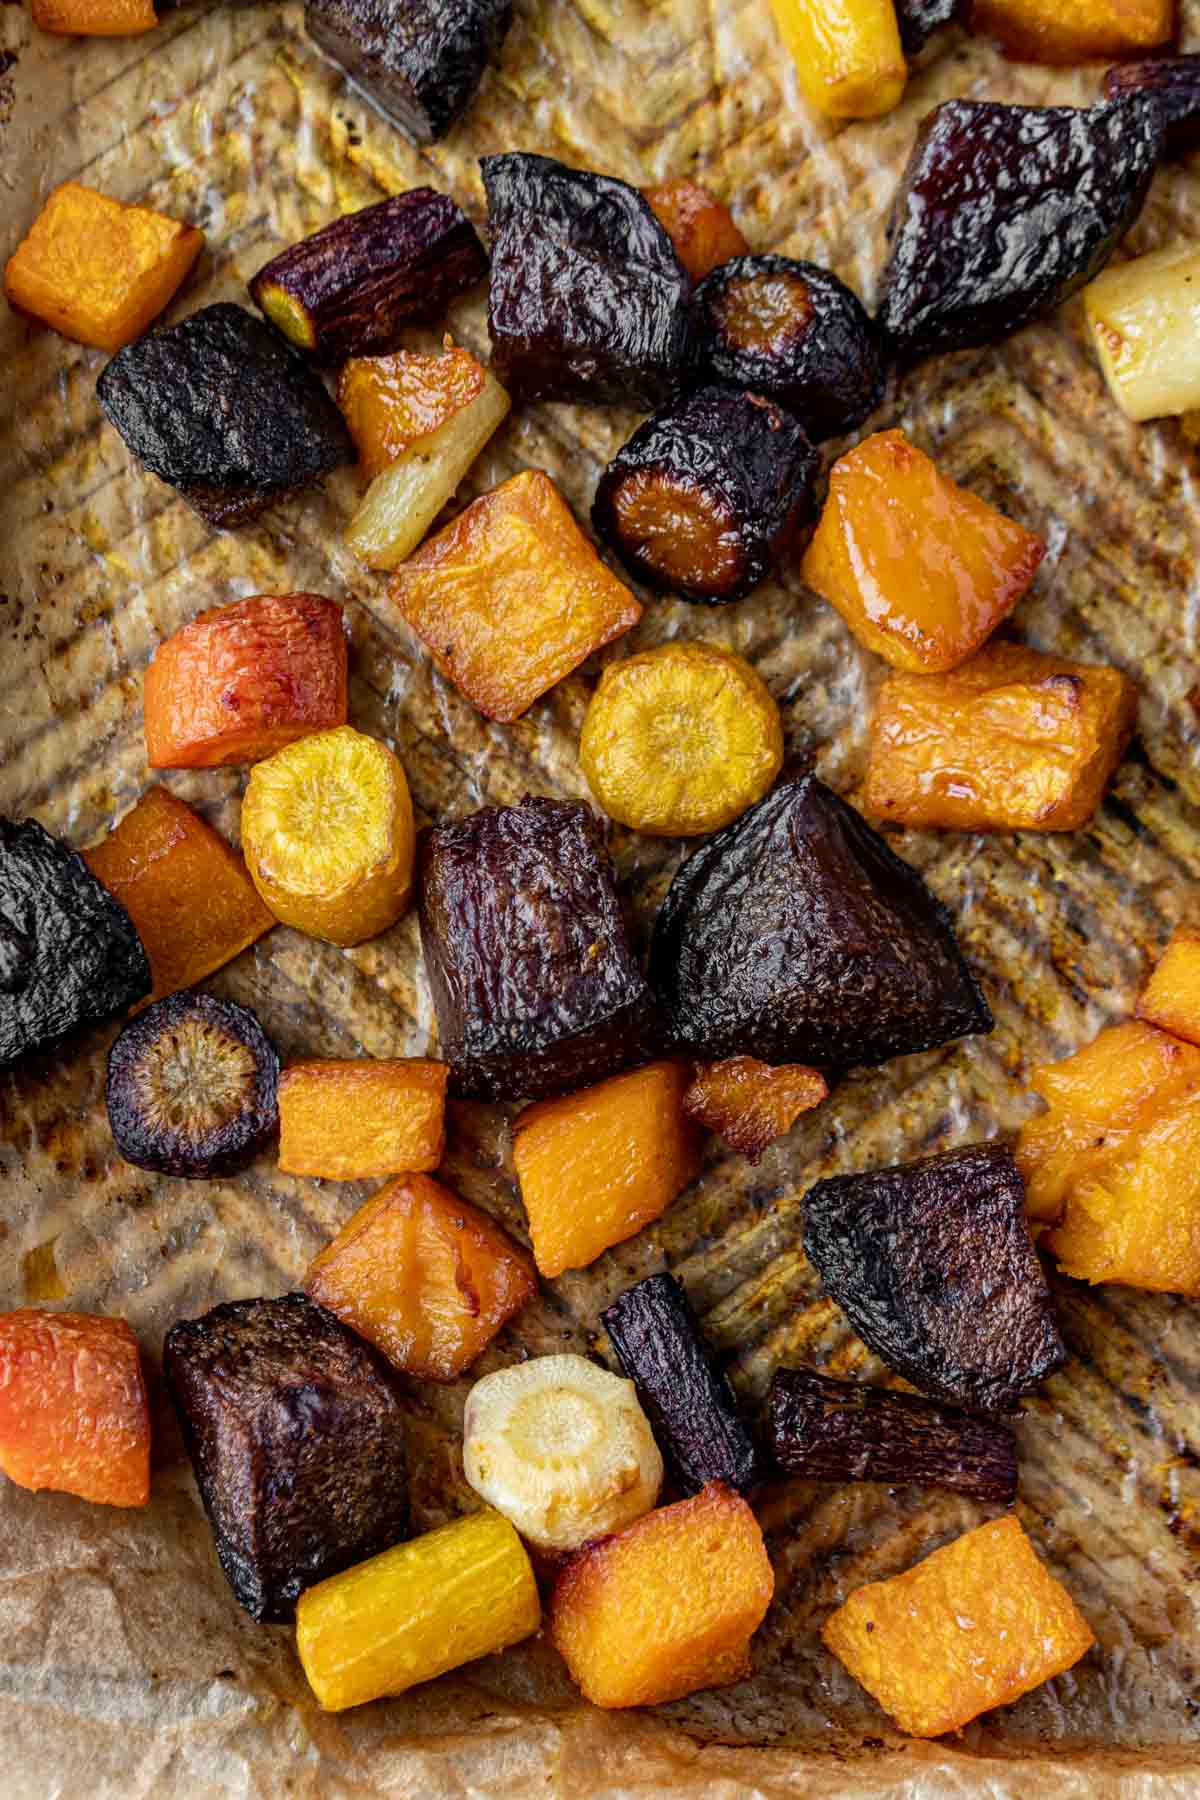 A sheet pan with roasted root vegetables on parchment paper